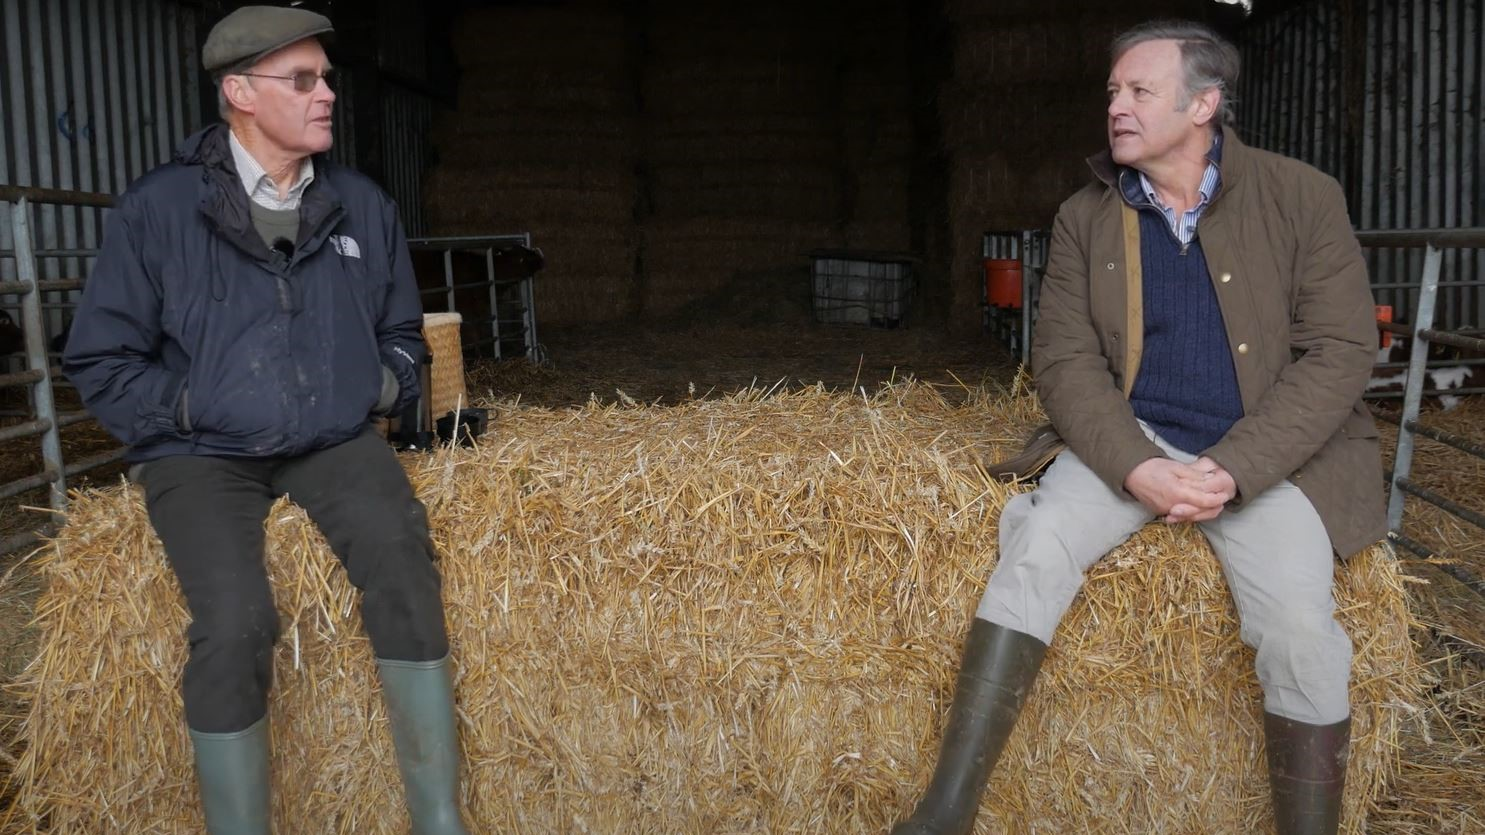 Farmers speak out on mental health struggles as part of farming help awareness week